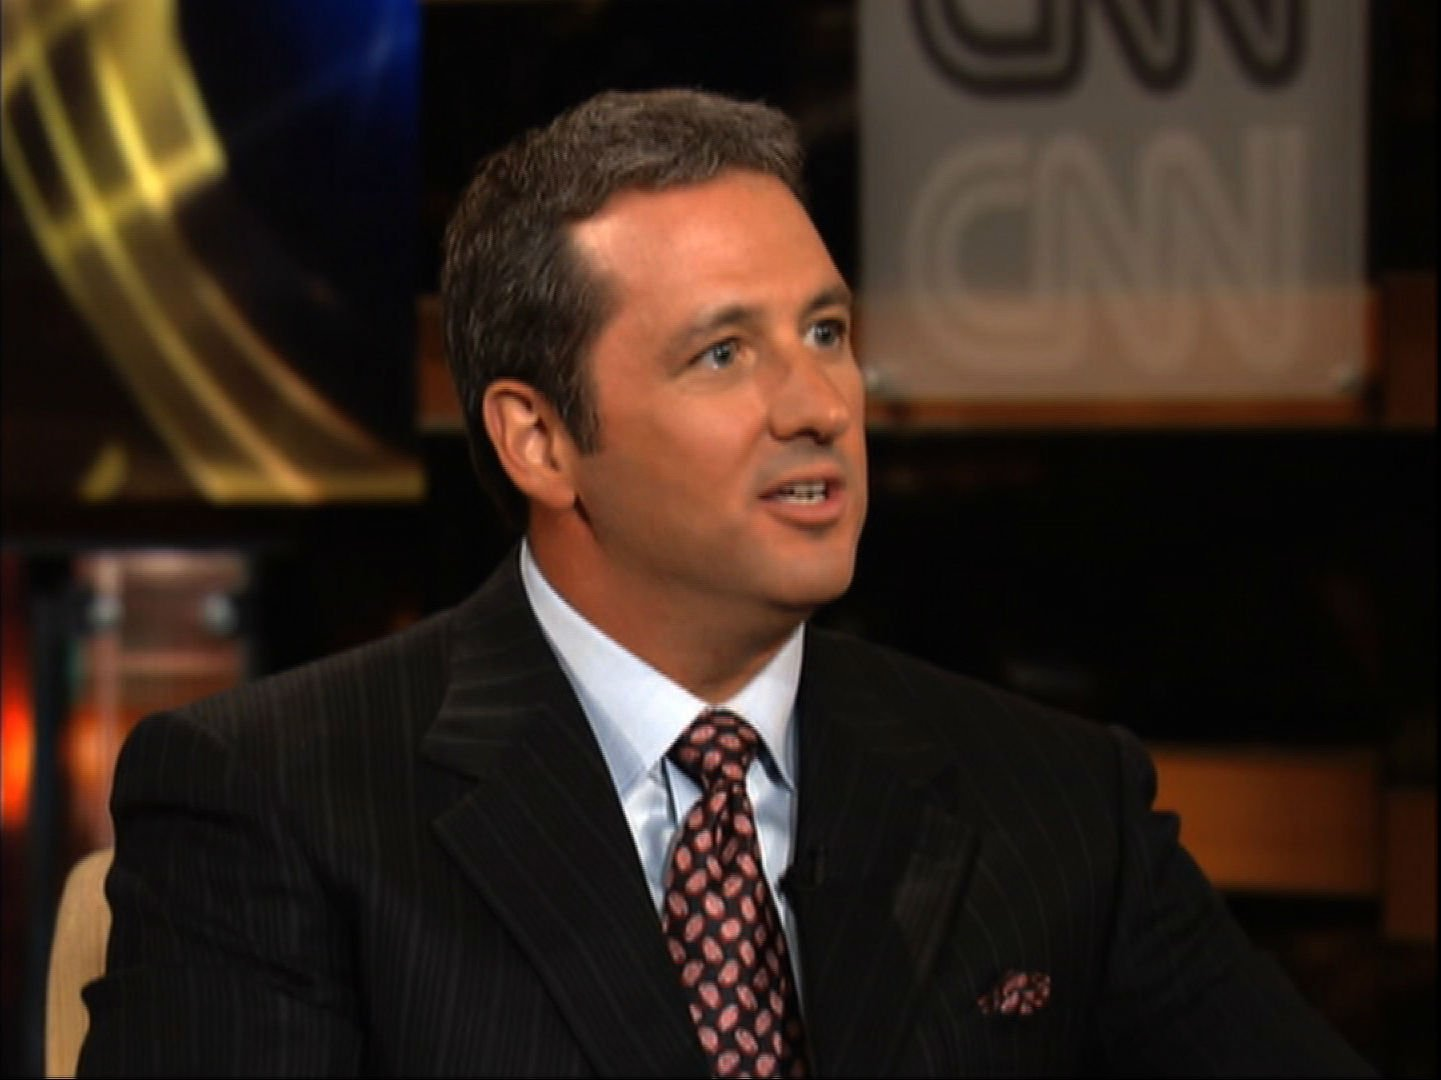 Former TV pitchman Kevin Trudeau speaks with CNN in 2005. He was sentenced in a Chicago courtroom Monday, March 17, 2014, to 10 years in prison for making false claims in infomercials about a weight loss program.